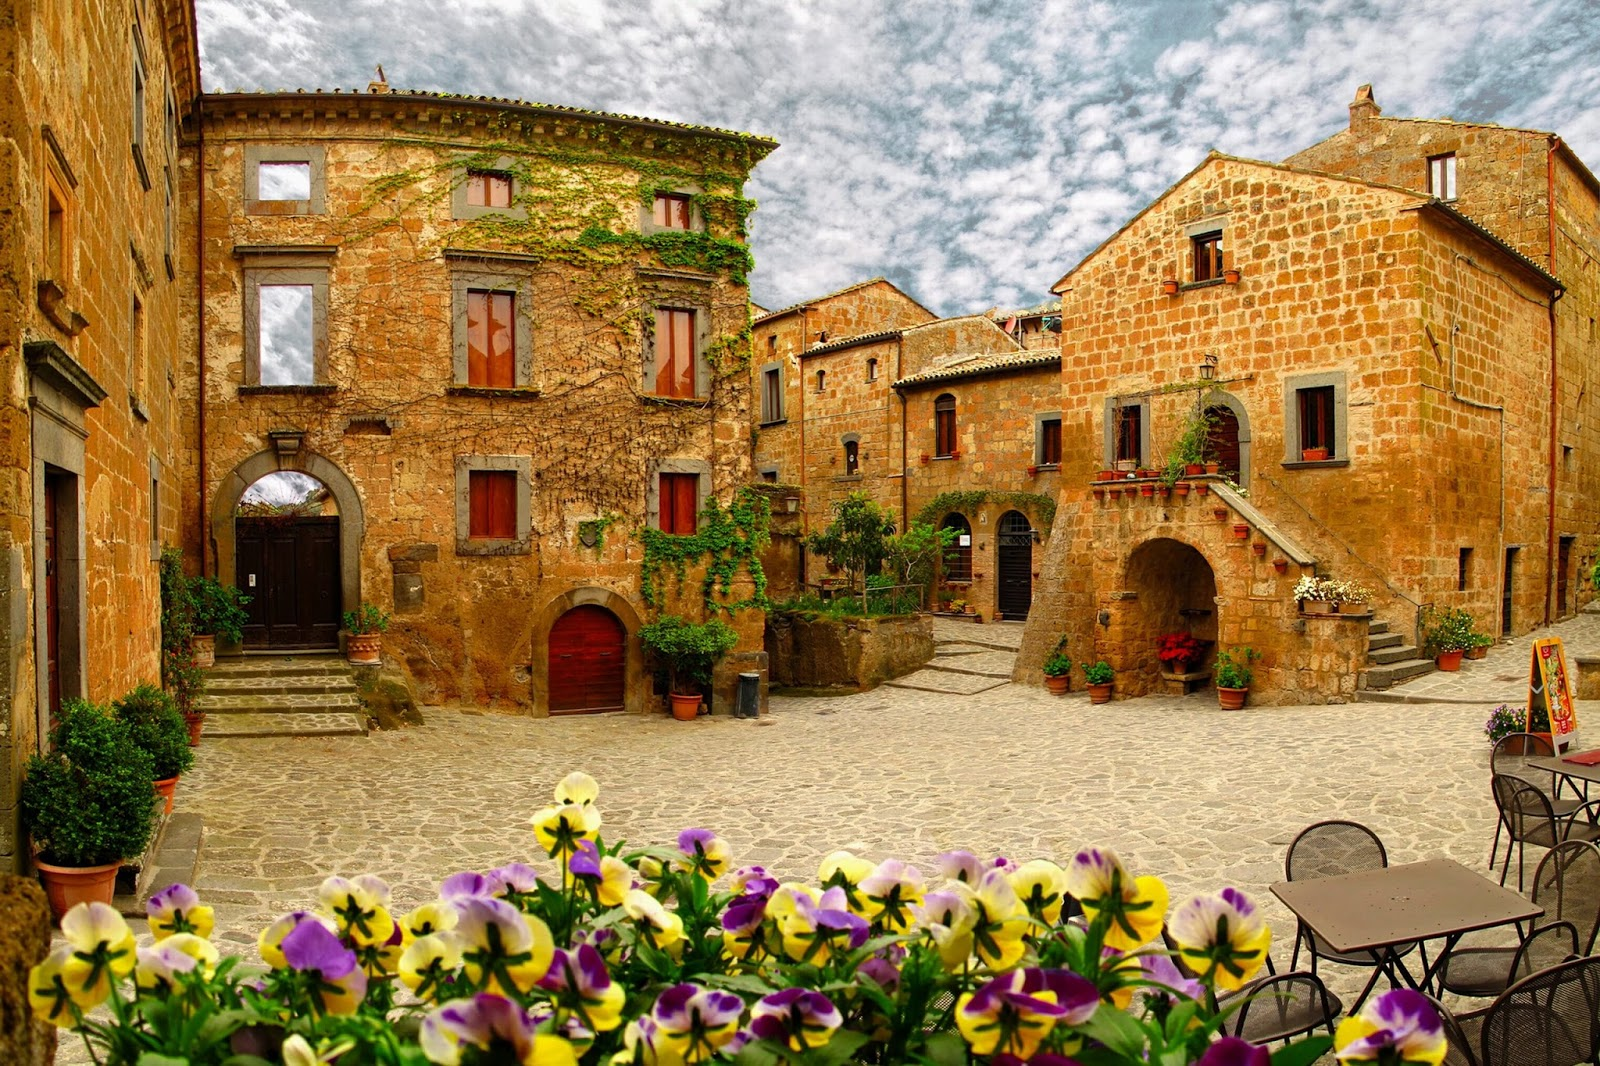 Civita di Bagnoregio: the dying city